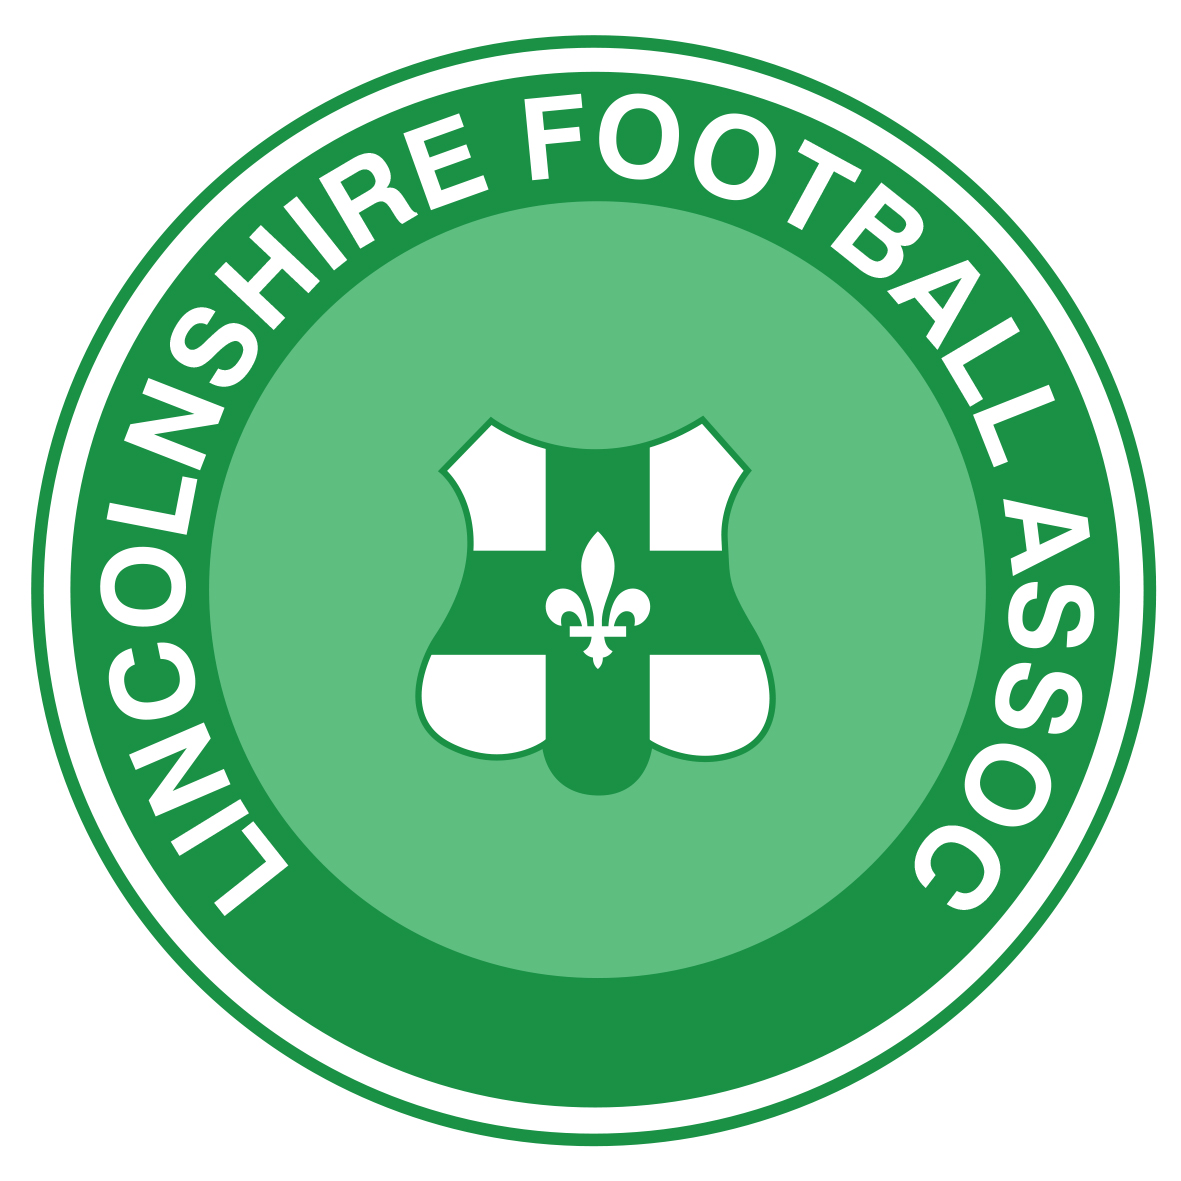 Lincolnshire County Football Association is recruiting with Leisure Opportunities